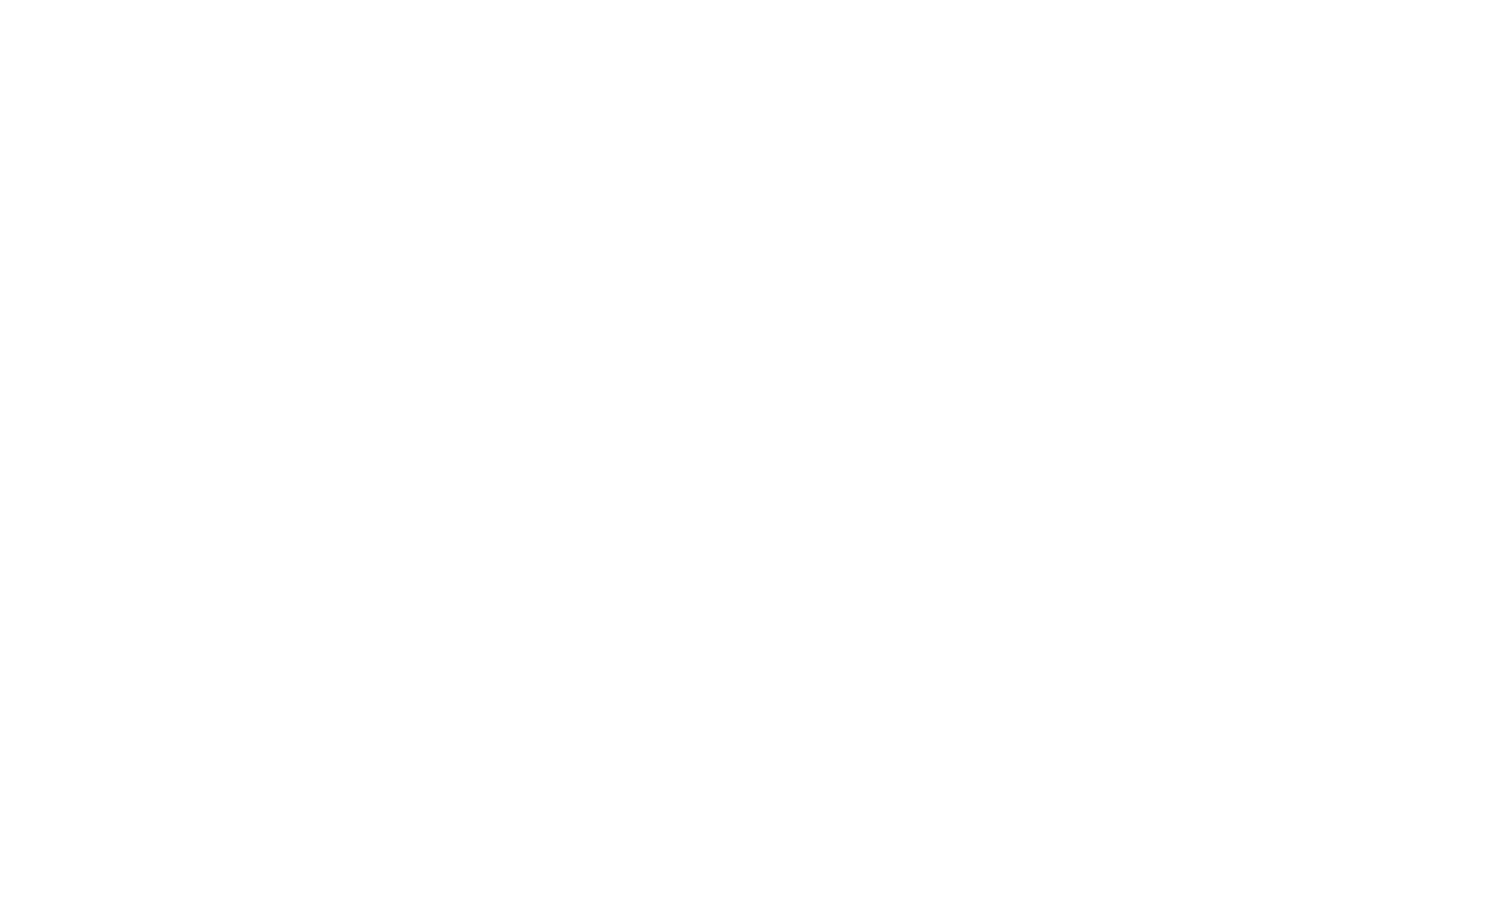 Living Earth Organic Growers Association